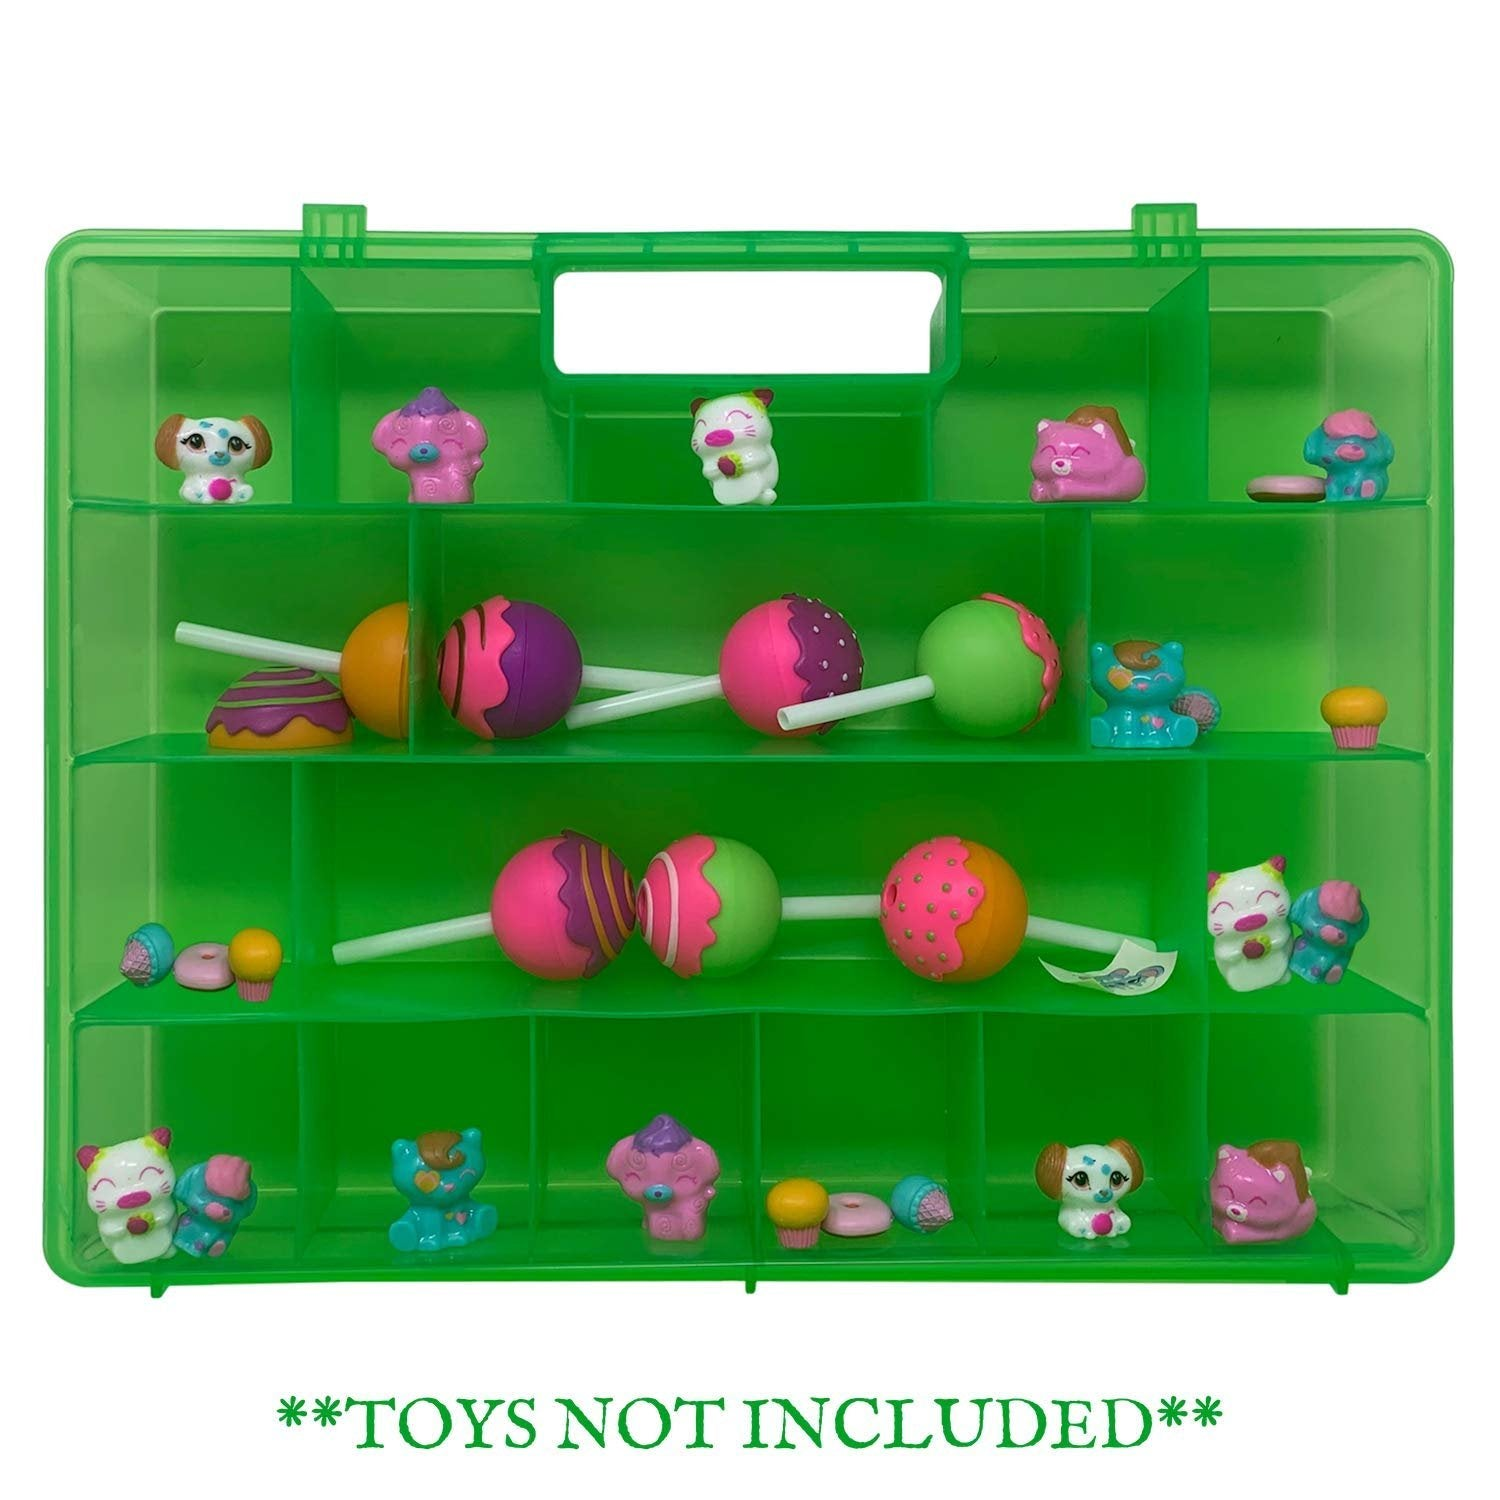 Life Made Better Toy Organizer, Compatible with CakePop Cuties Figurines, Sturdy Kid Storage Case by LMB